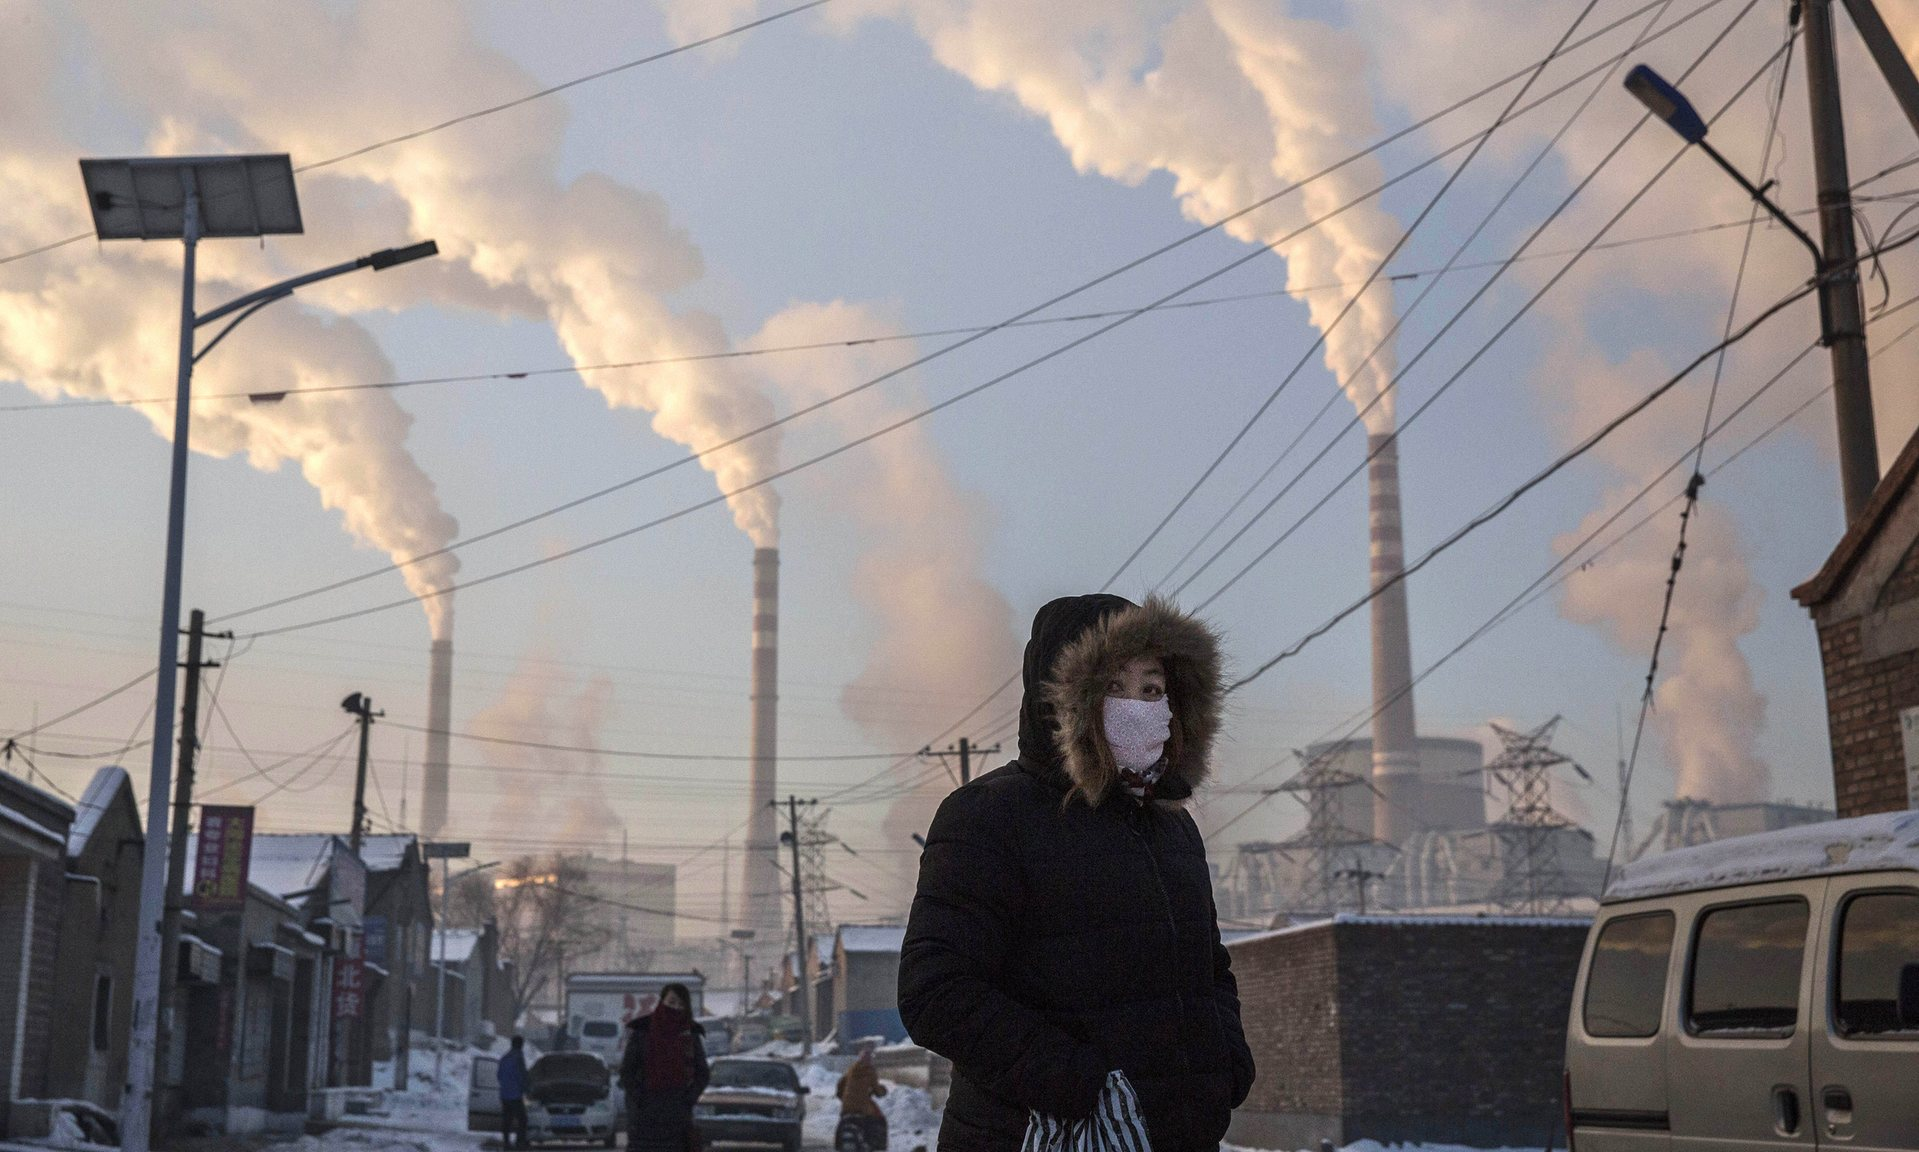 A history of heavy dependence on burning coal for energy has made China the source of nearly a third of the world's total carbon dioxide (CO2) emissions. Photograph: Kevin Frayer/Getty Images